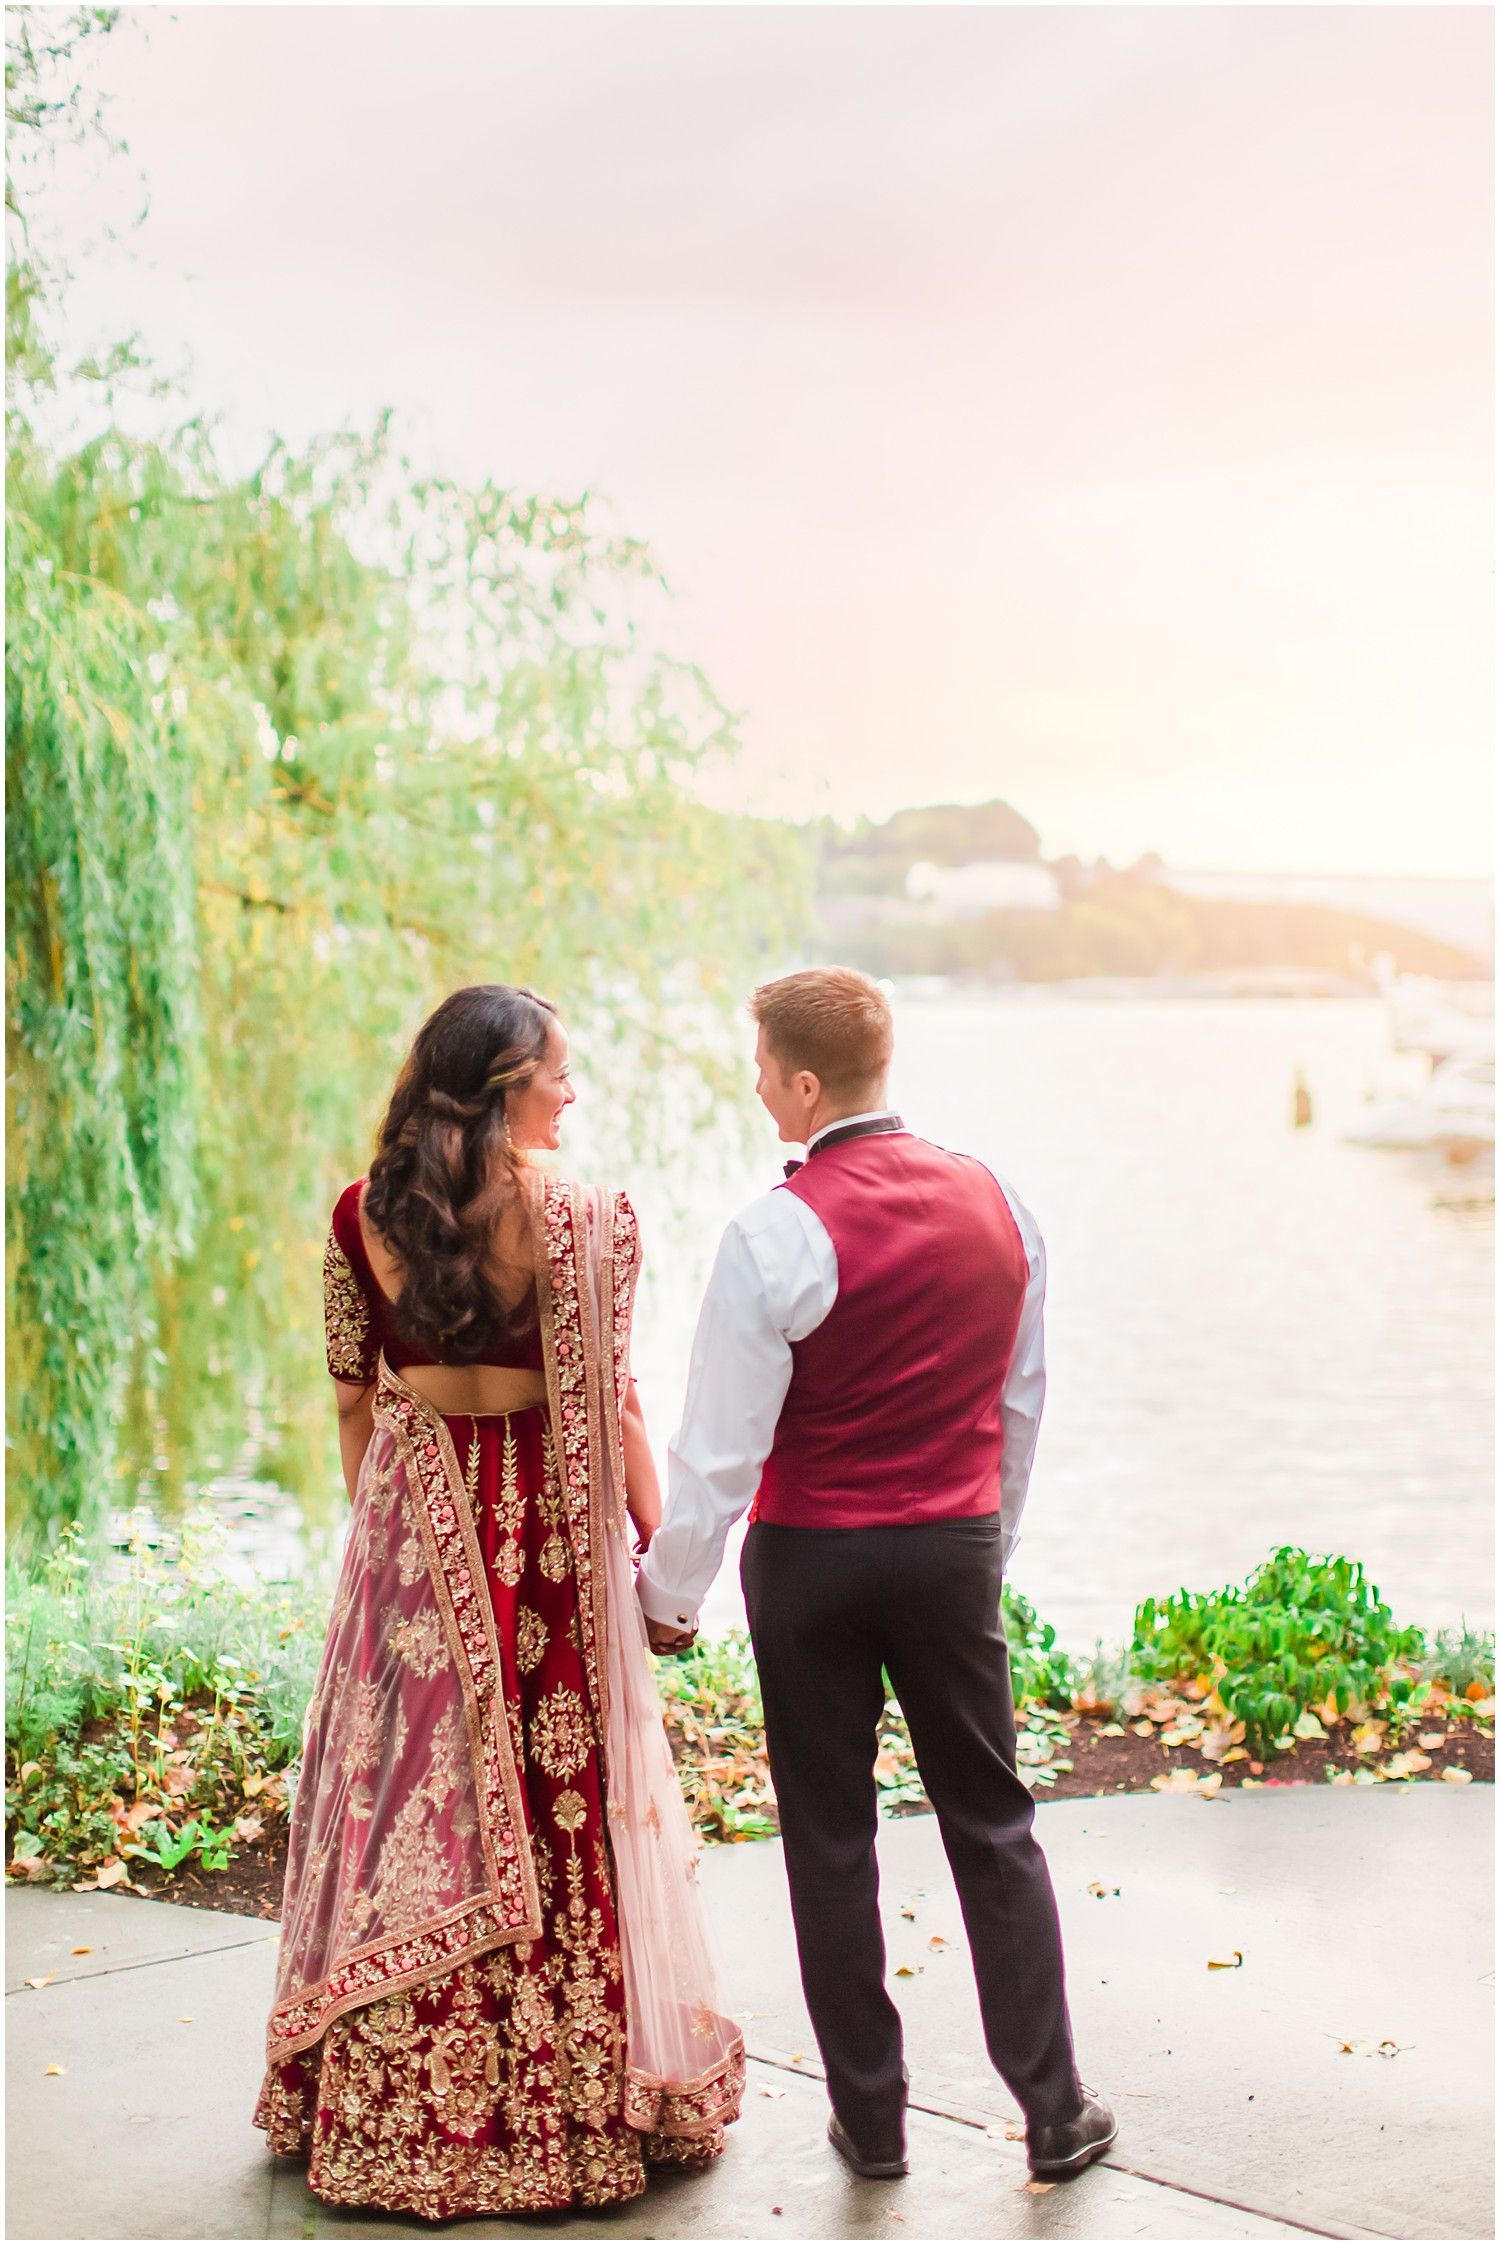 Sunset wedding photos multicultural couple indian american wedding